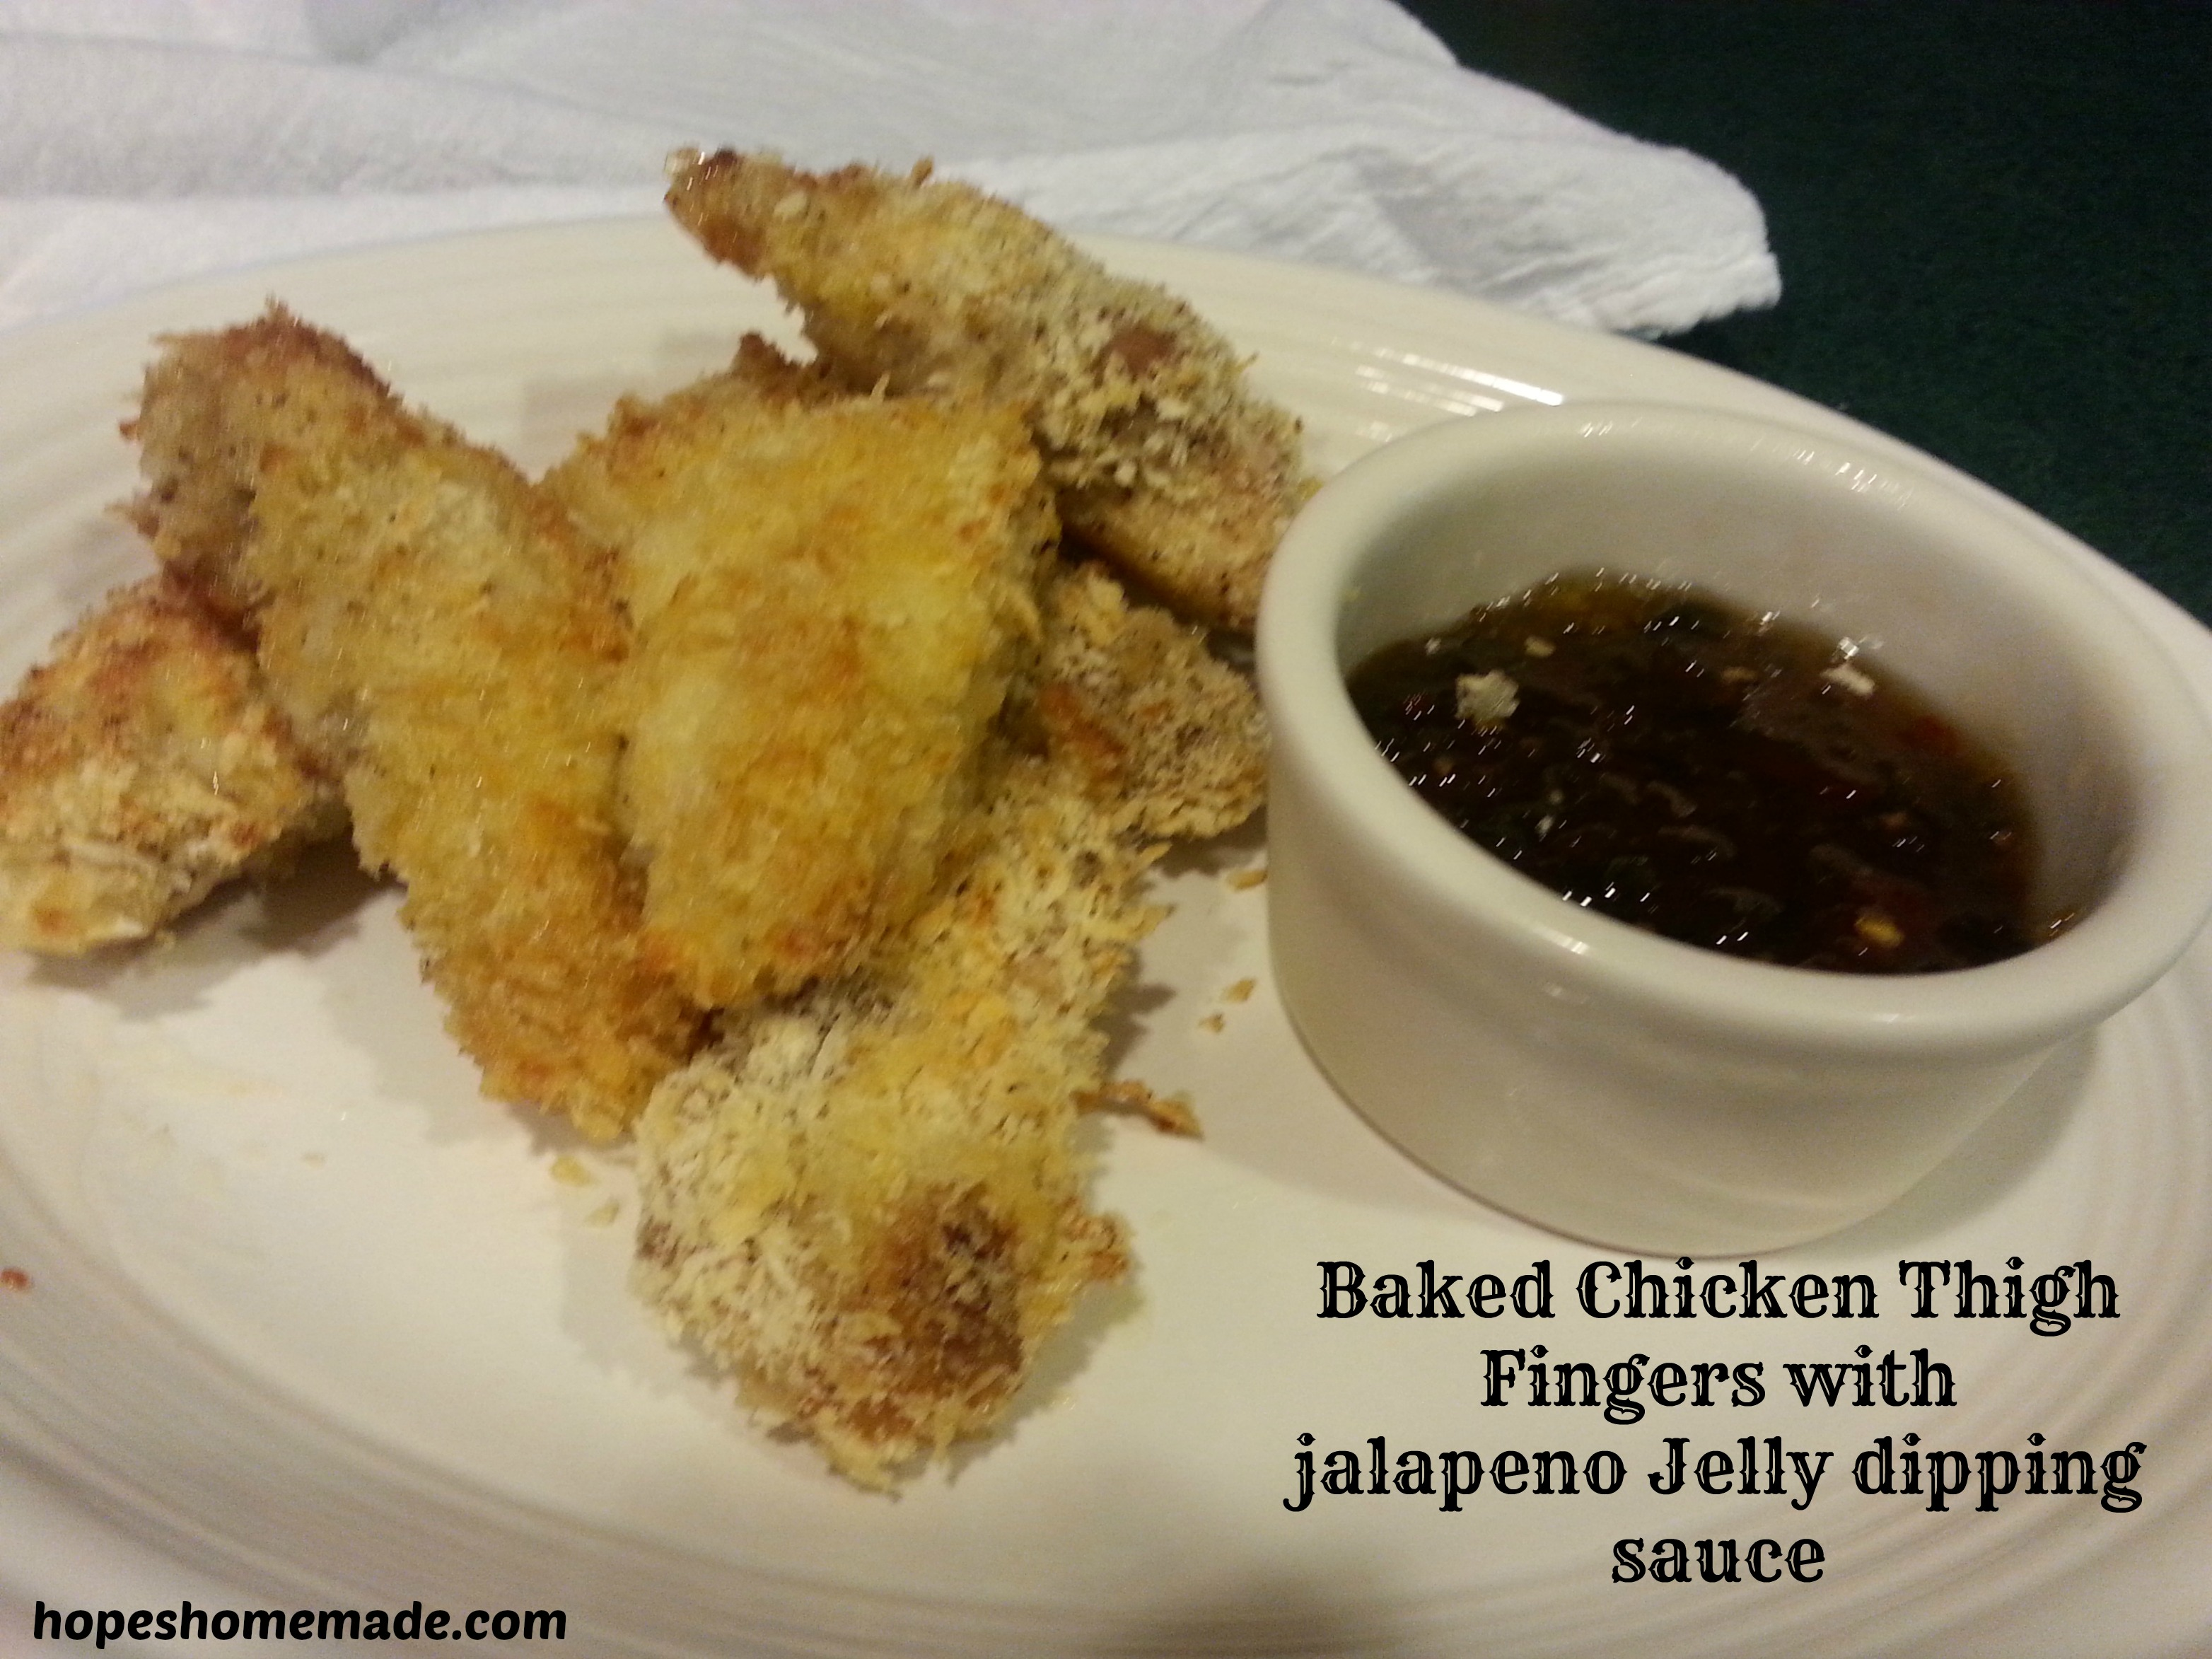 Baked Chicken Thigh Fingers with jalapeno Jelly dipping sauce